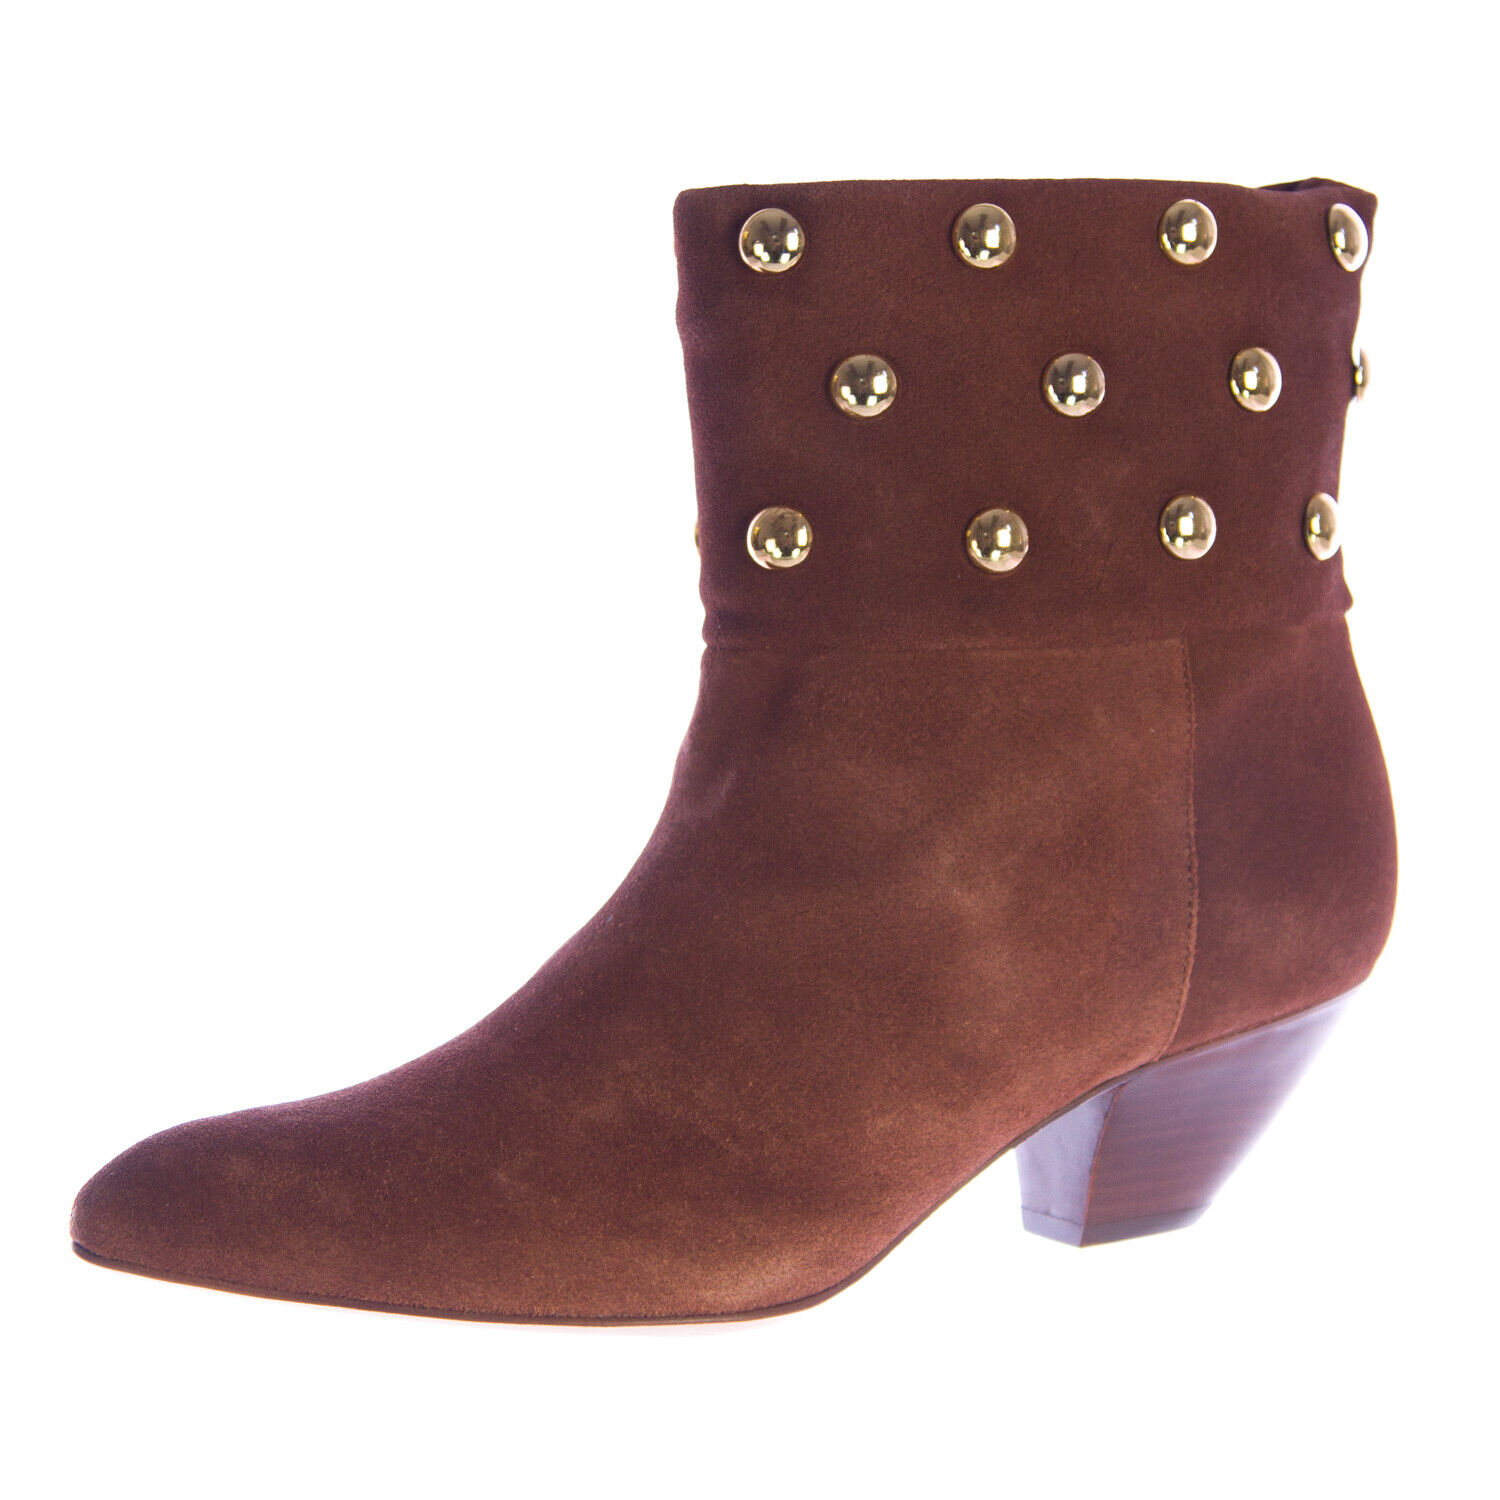 REBECCA MINKOFF Women's colorado Chestnut Suede Heeled Ankle Boots Sz 7 NEW